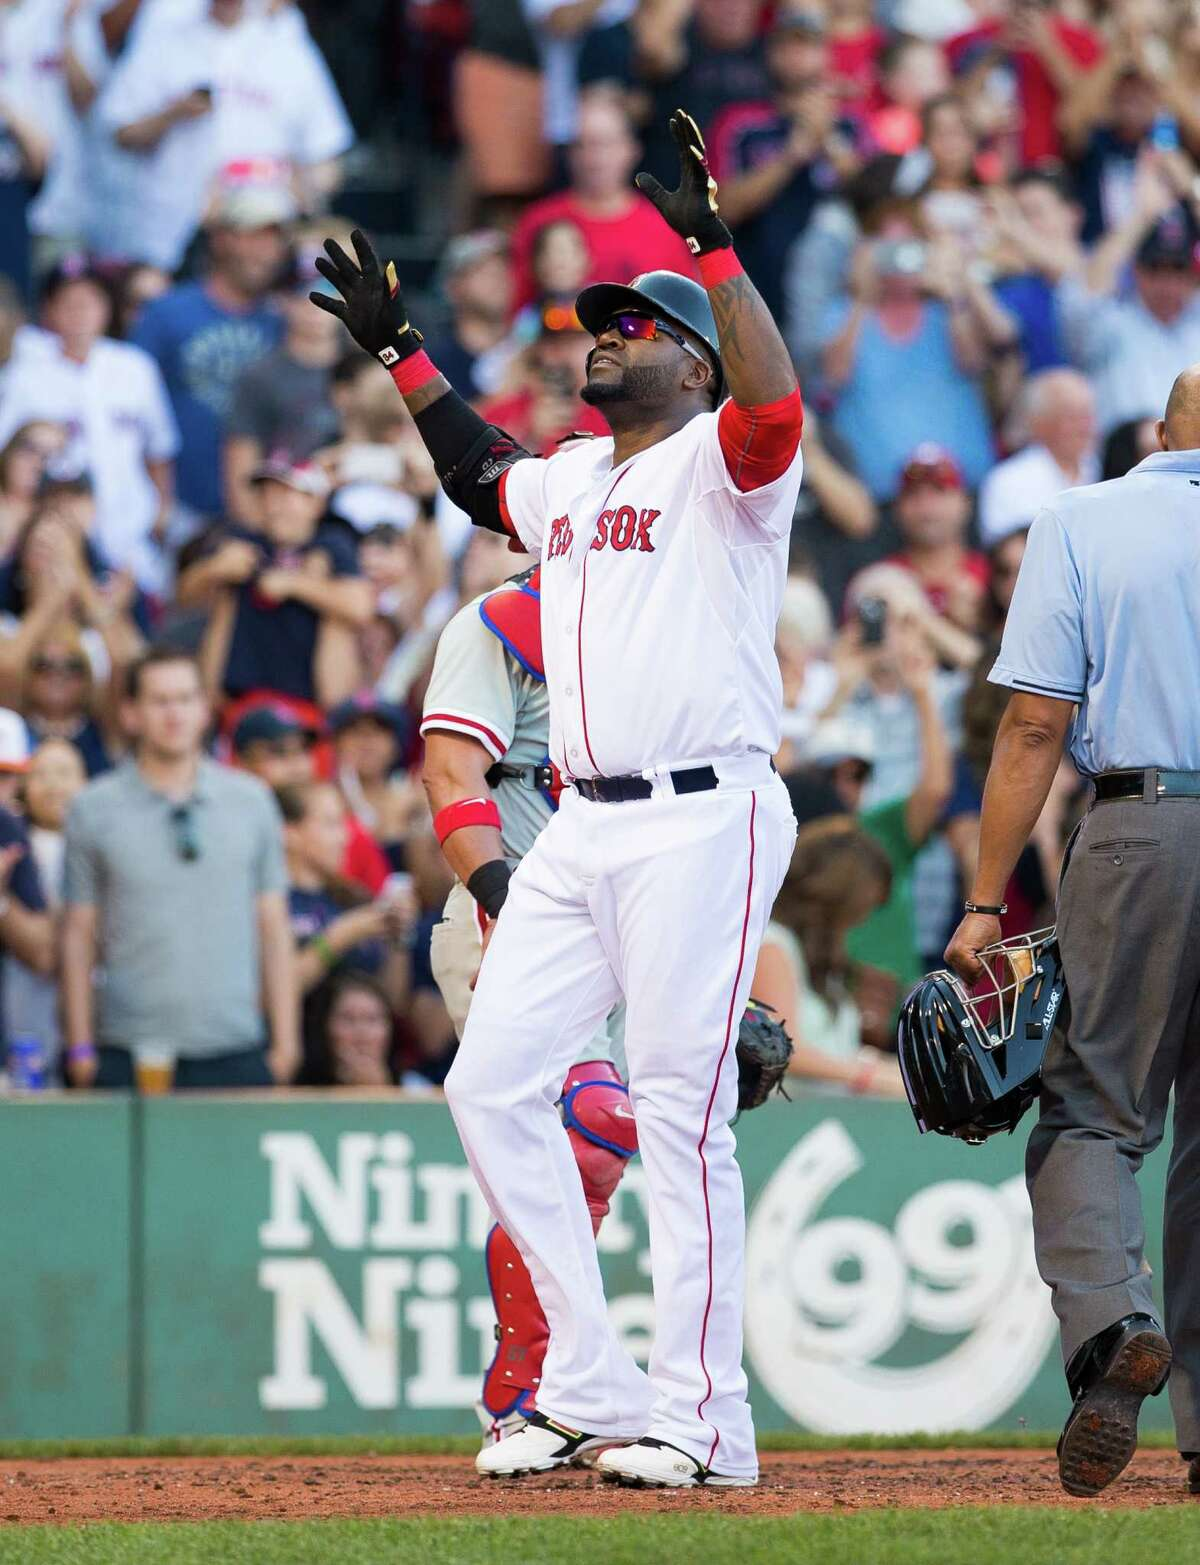 BOSTON, MA - SEPTEMBER 5: David Ortiz #34 of the Boston Red Sox celebrates his 496th career home run during the fourth inning against the Philadelphia Phillies at Fenway Park on September 5, 2015 in Boston, Massachusetts. (Photo by Rich Gagnon/Getty Images) ORG XMIT: 538594267